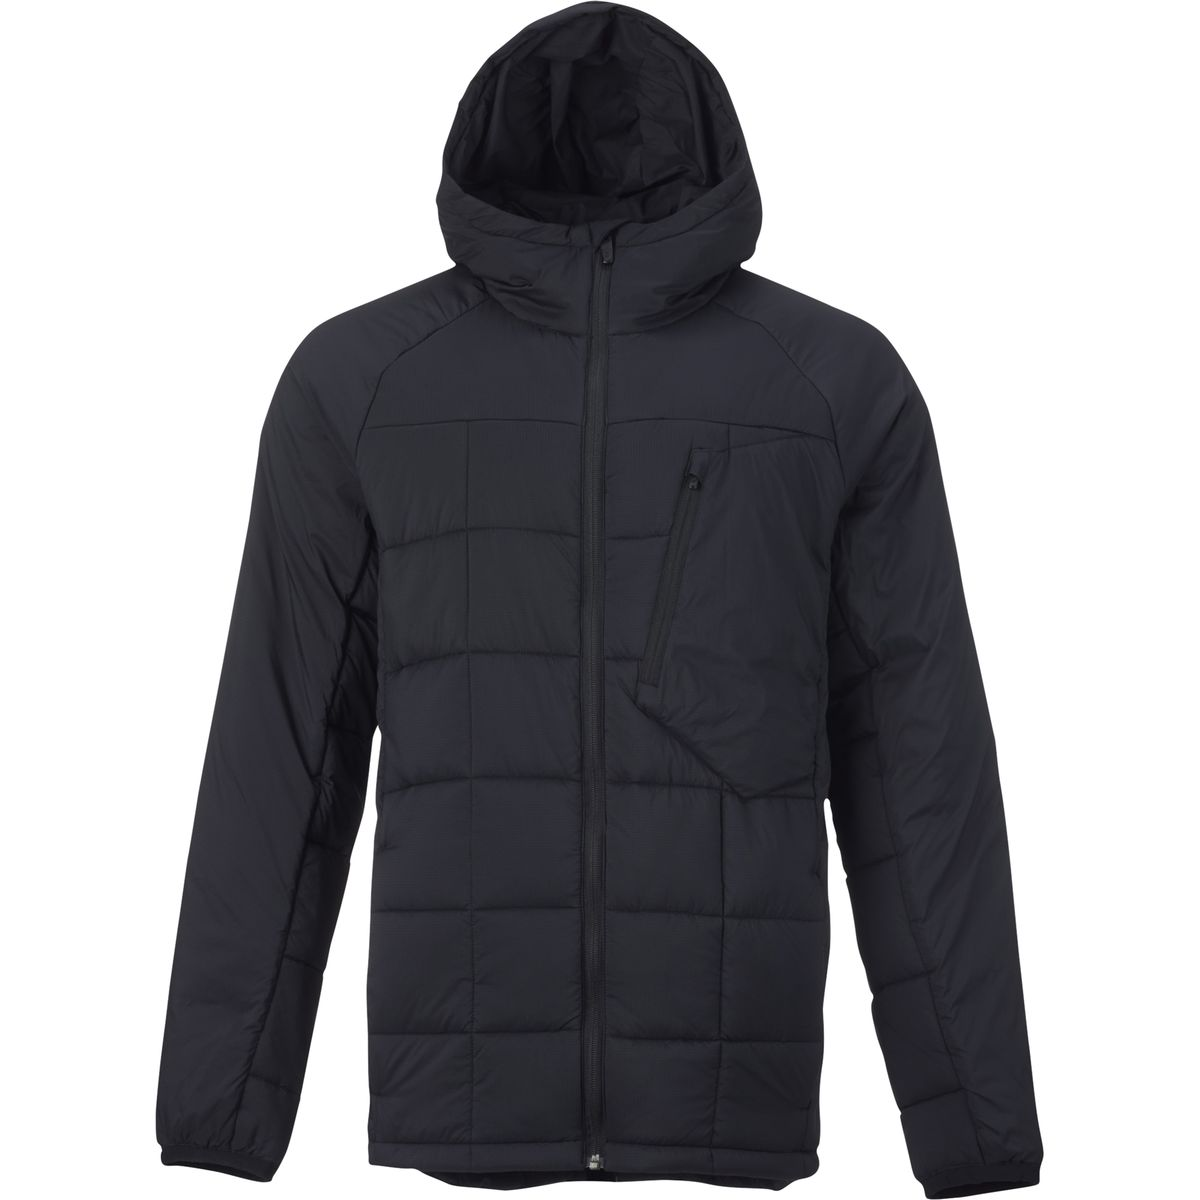 Mens Synthetic Insulation Jackets